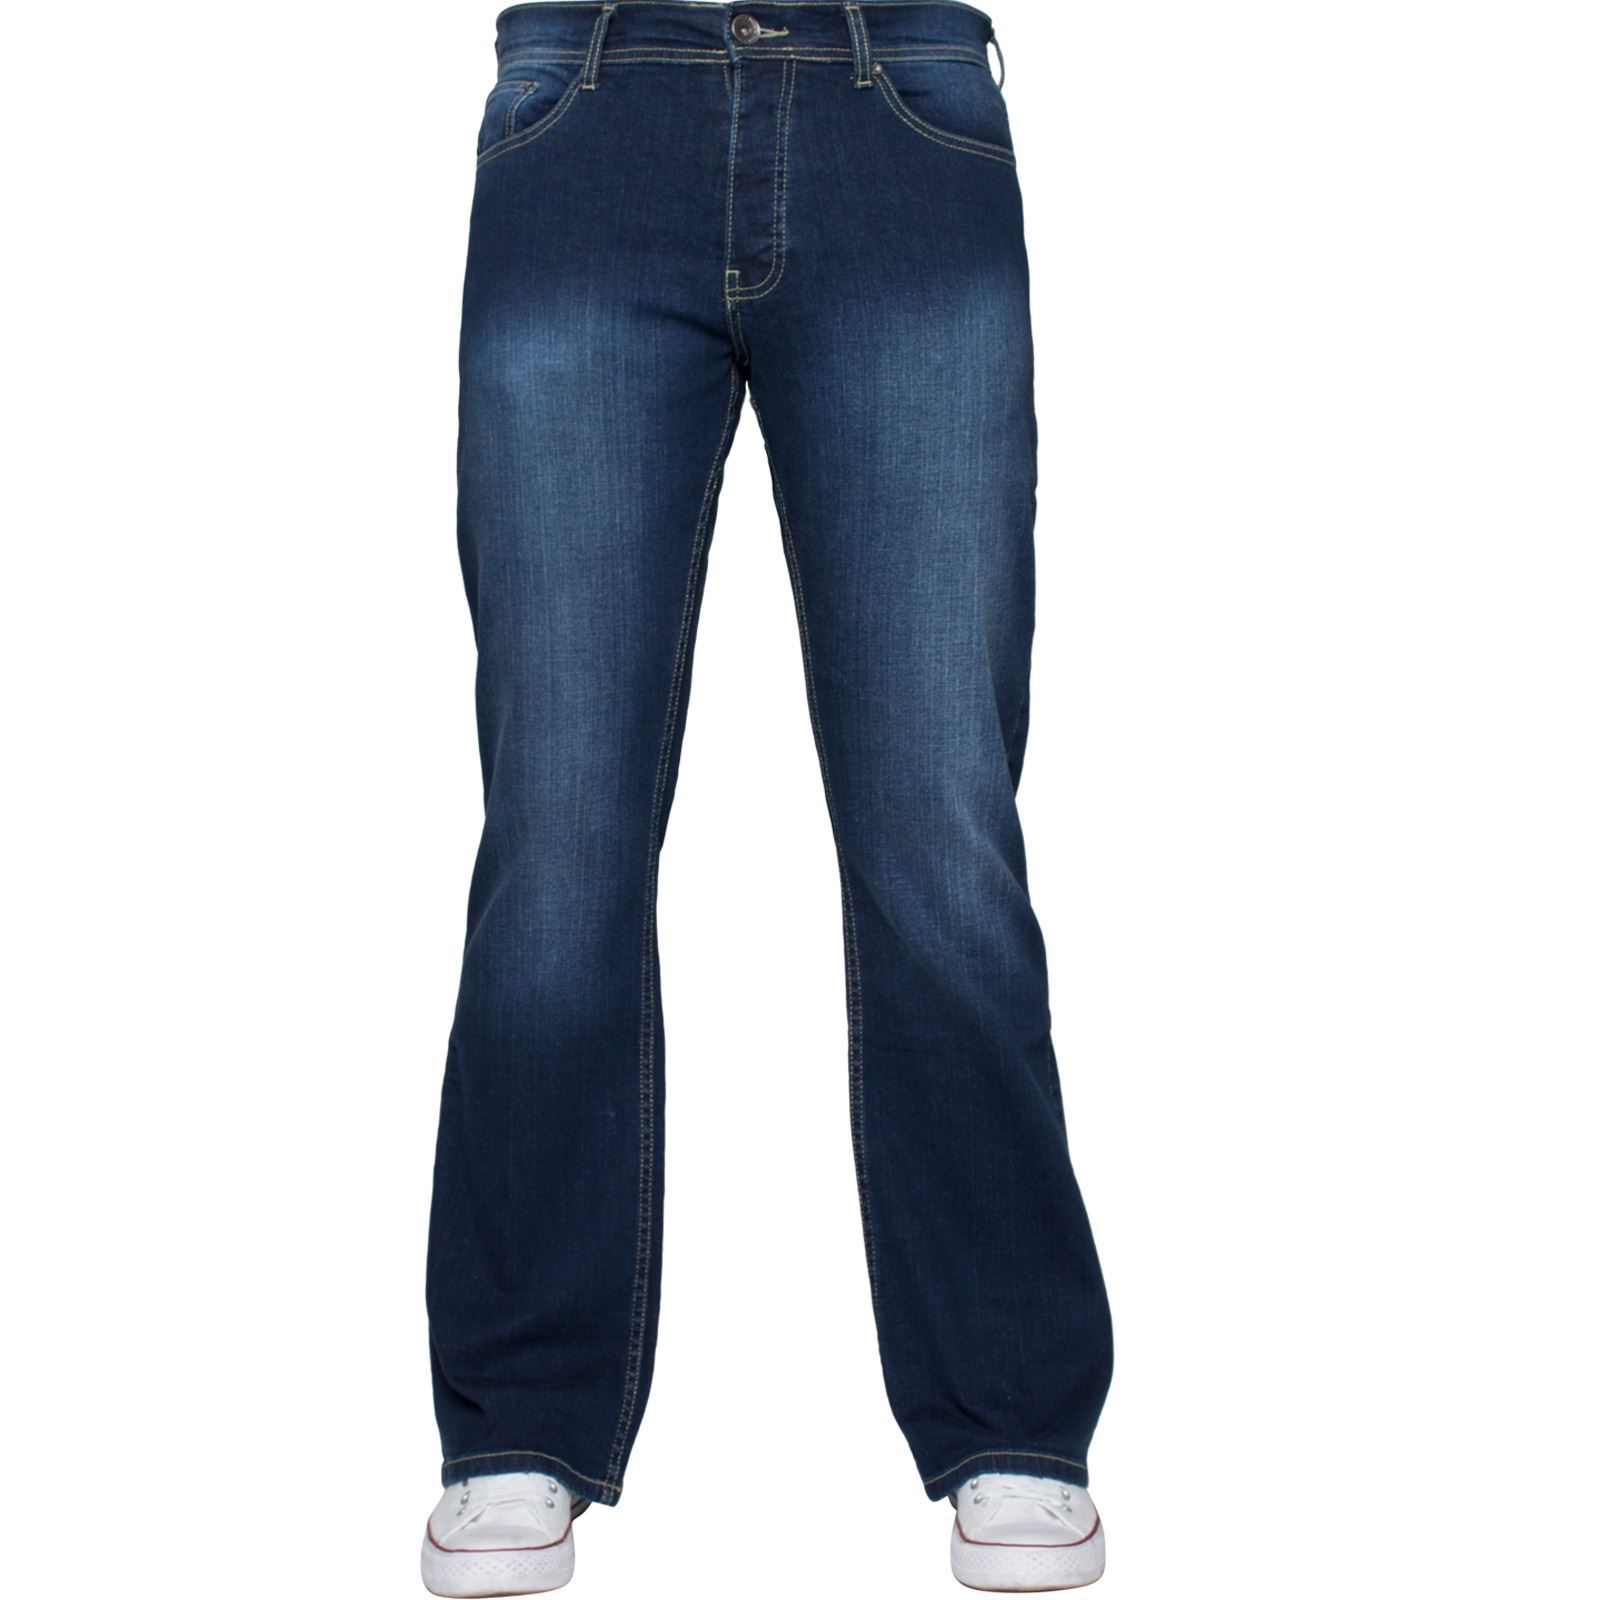 Mens-Straight-Bootcut-Jeans-Stretch-Denim-Pants-Regular-Fit-Big-Tall-All-Waists thumbnail 30